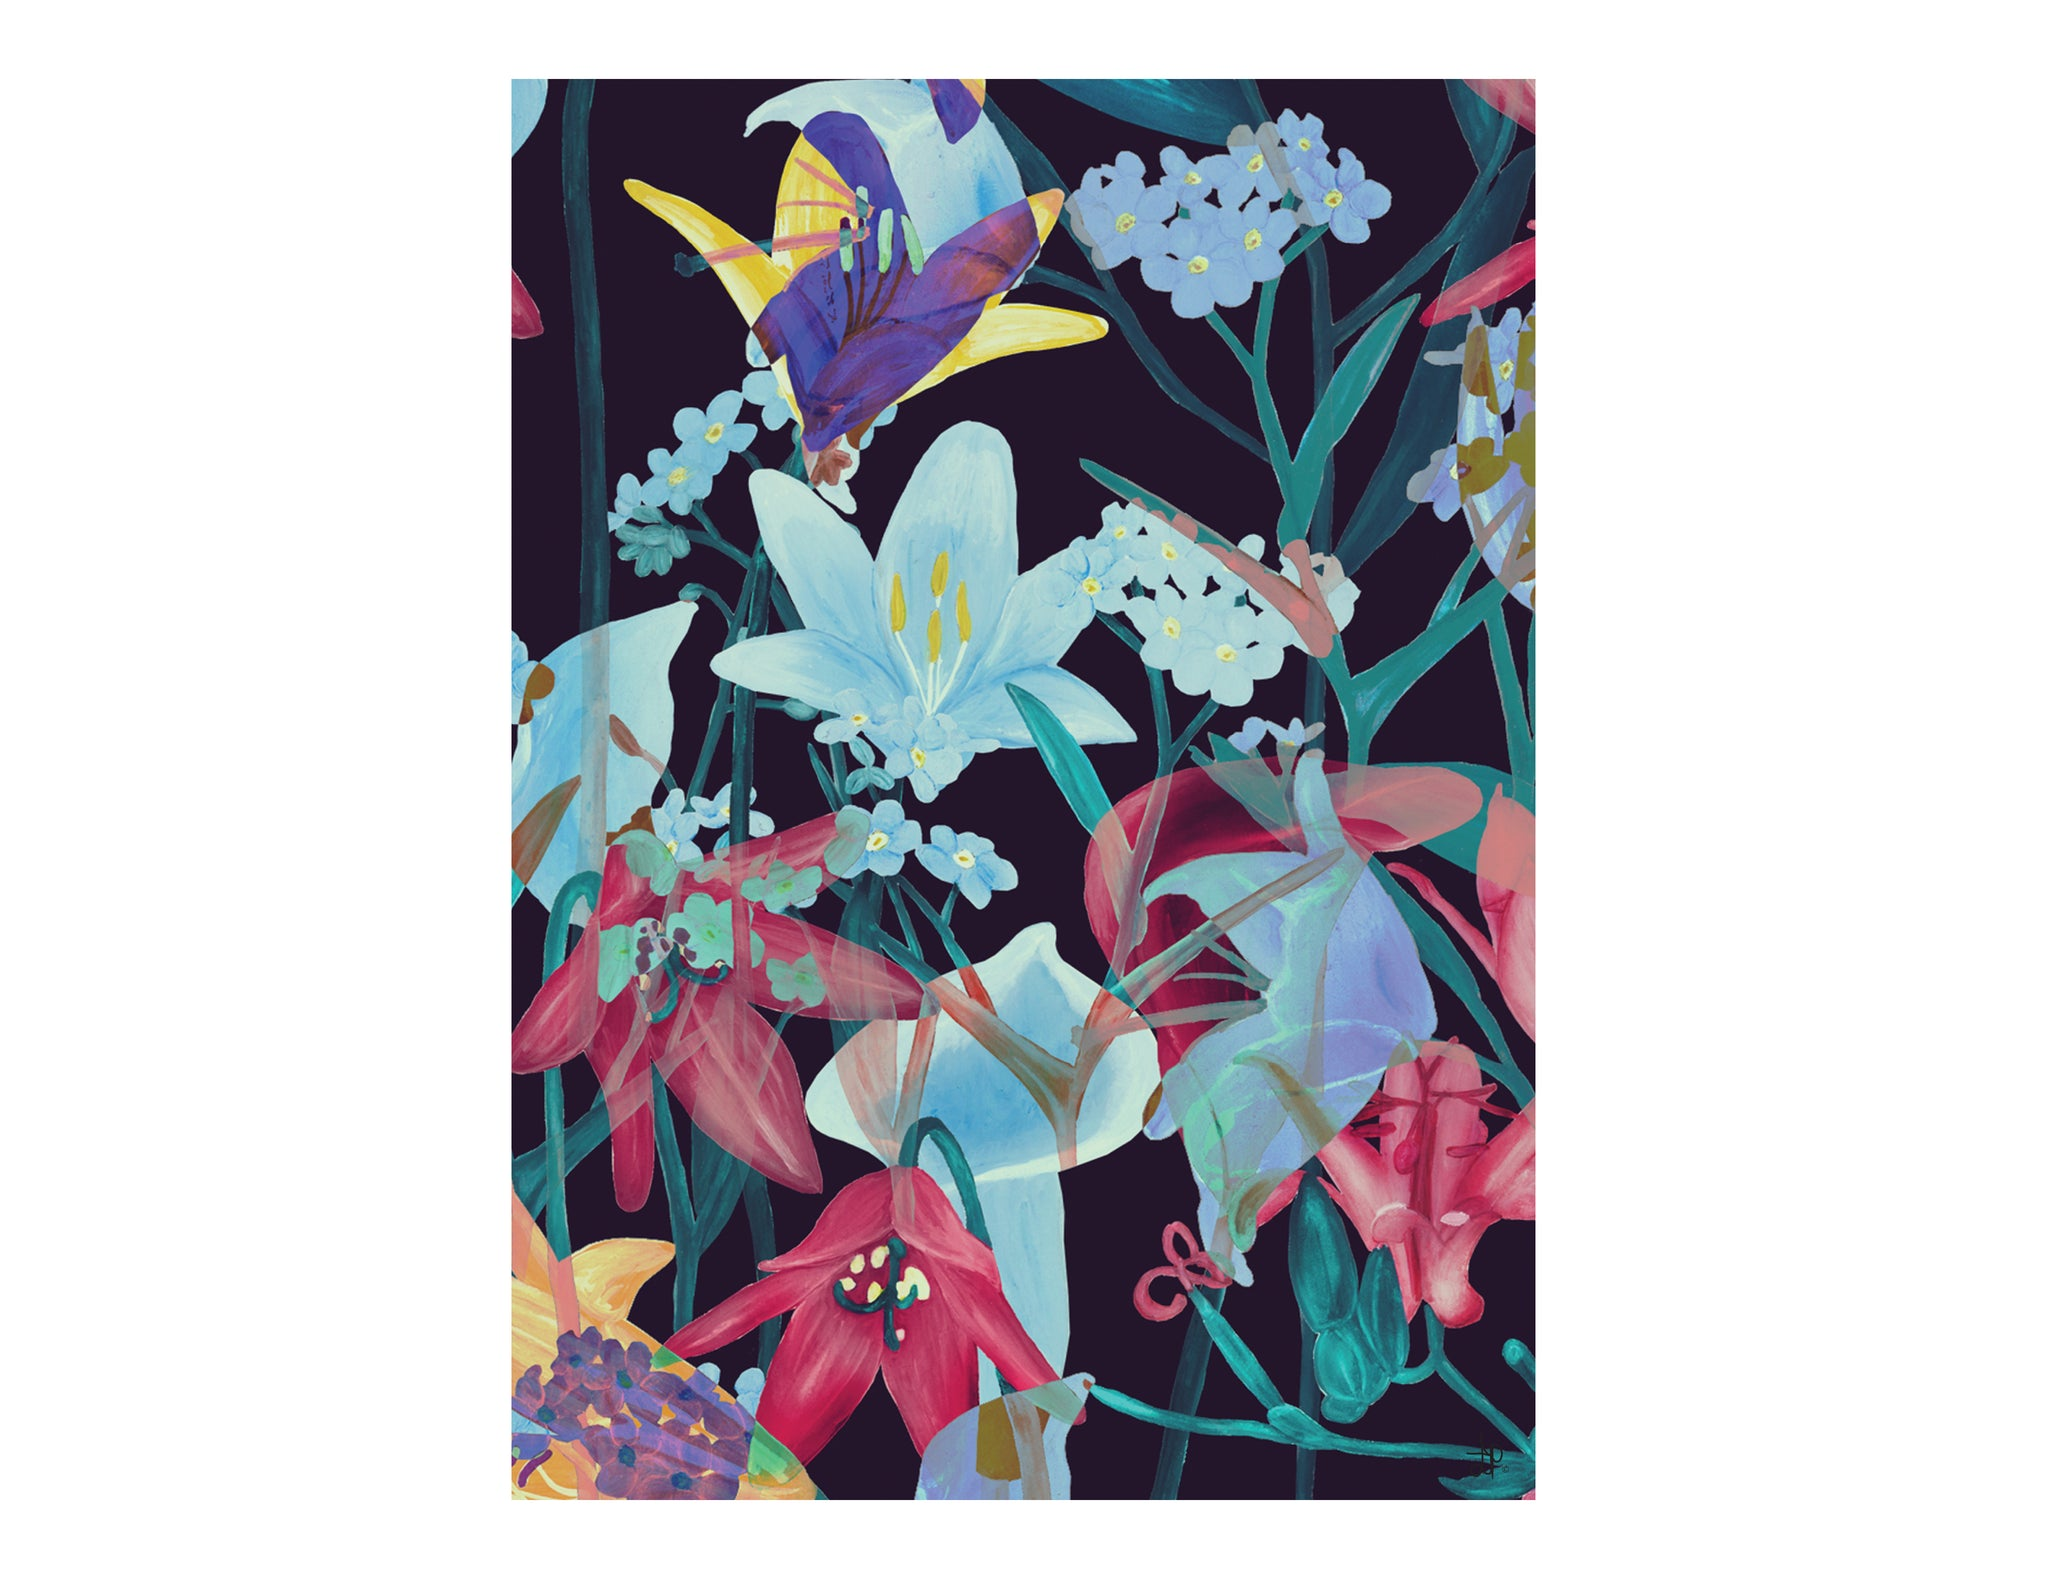 ARTISAN A3 WALL PRINT Tropical Sorbet - Lisa & Alex